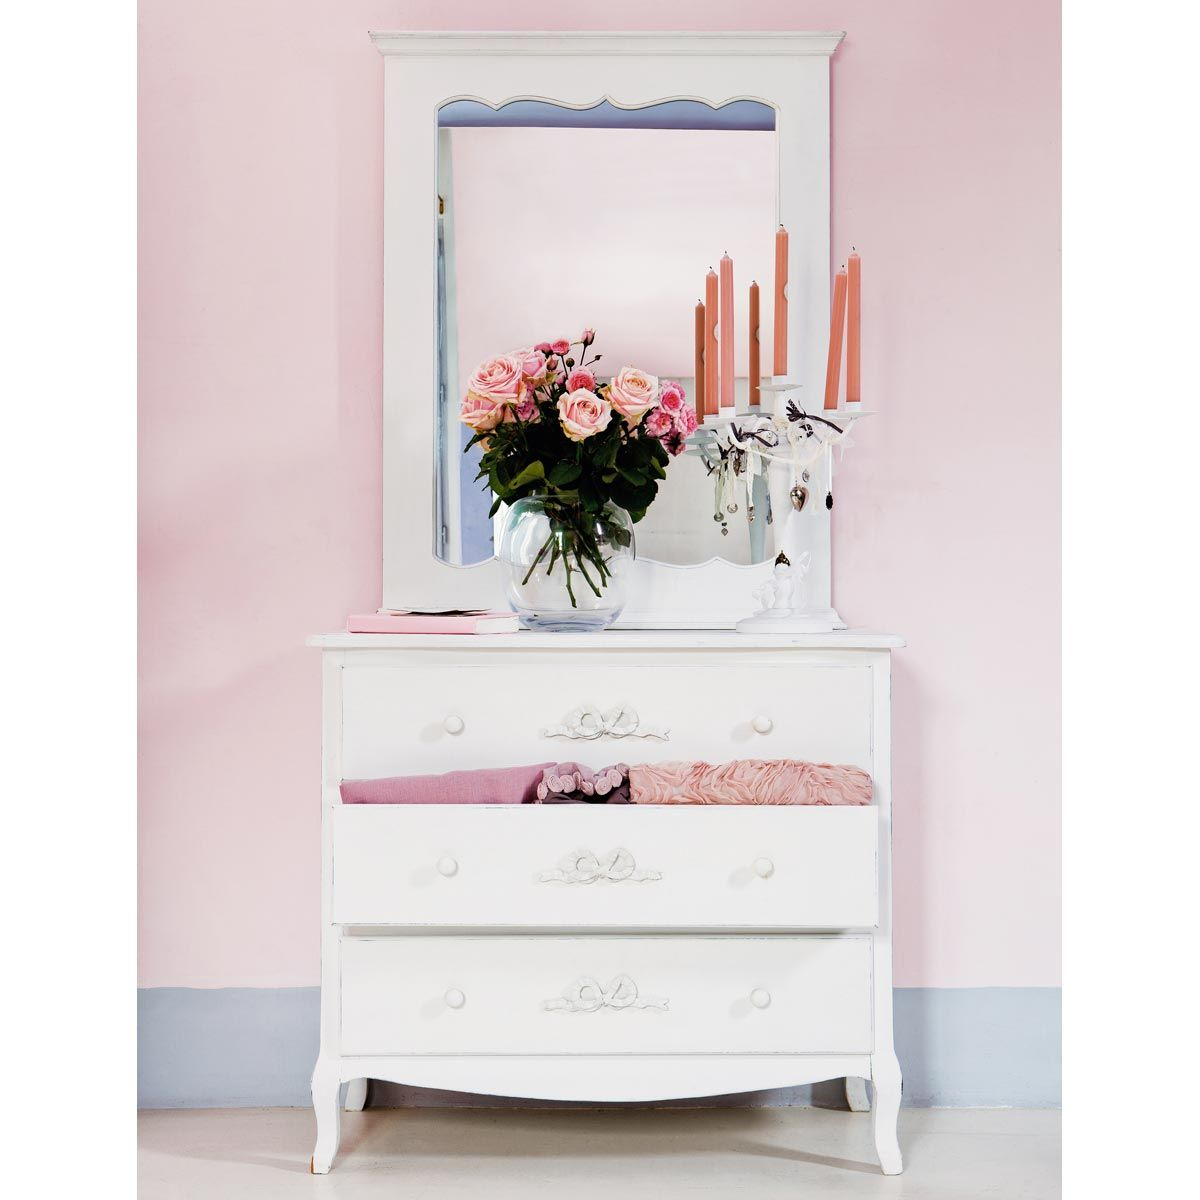 commode en bois blanche l 90 cm commode blanche blanc ivoire et commodes. Black Bedroom Furniture Sets. Home Design Ideas